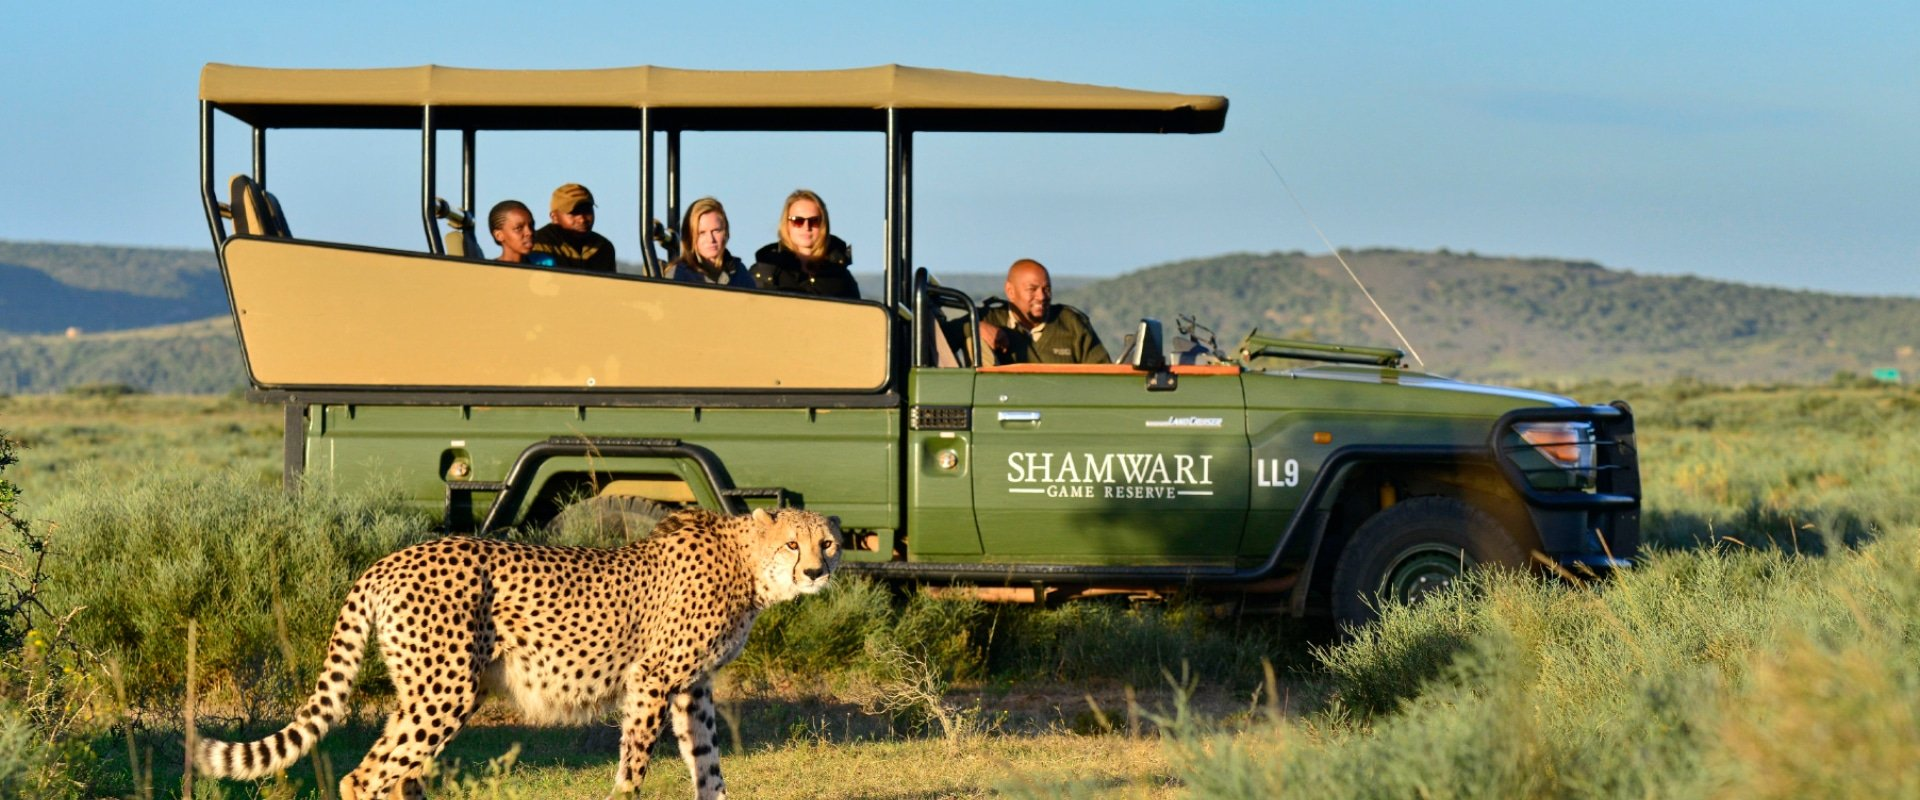 Search for the Big 5 on a safari drive